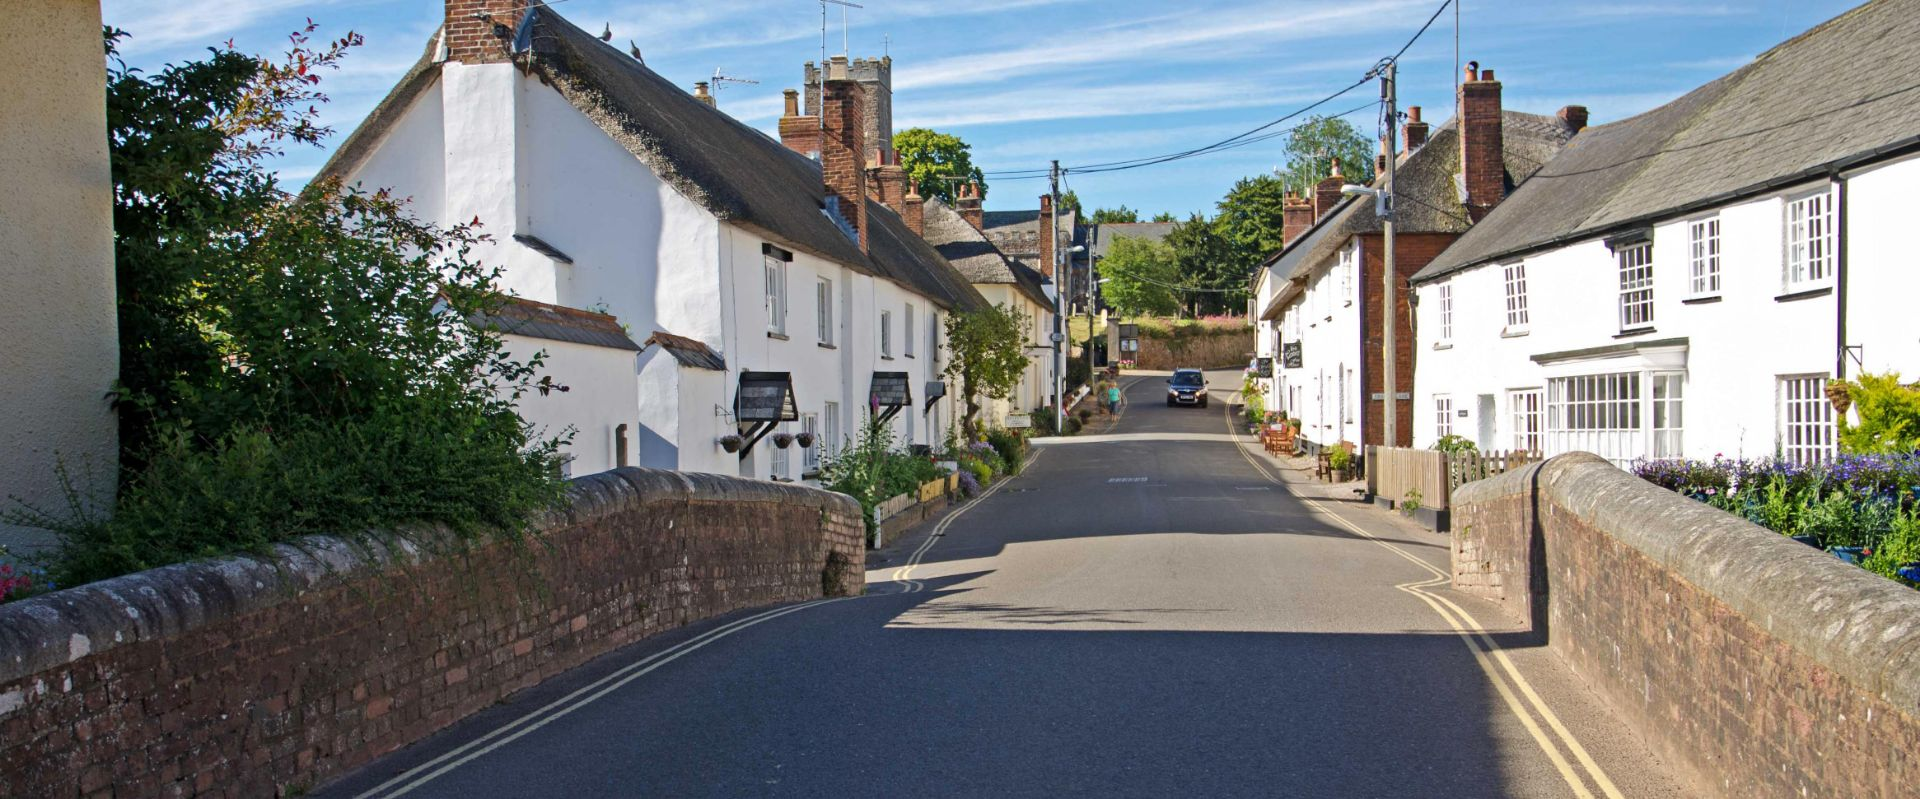 The main street in East Budleigh